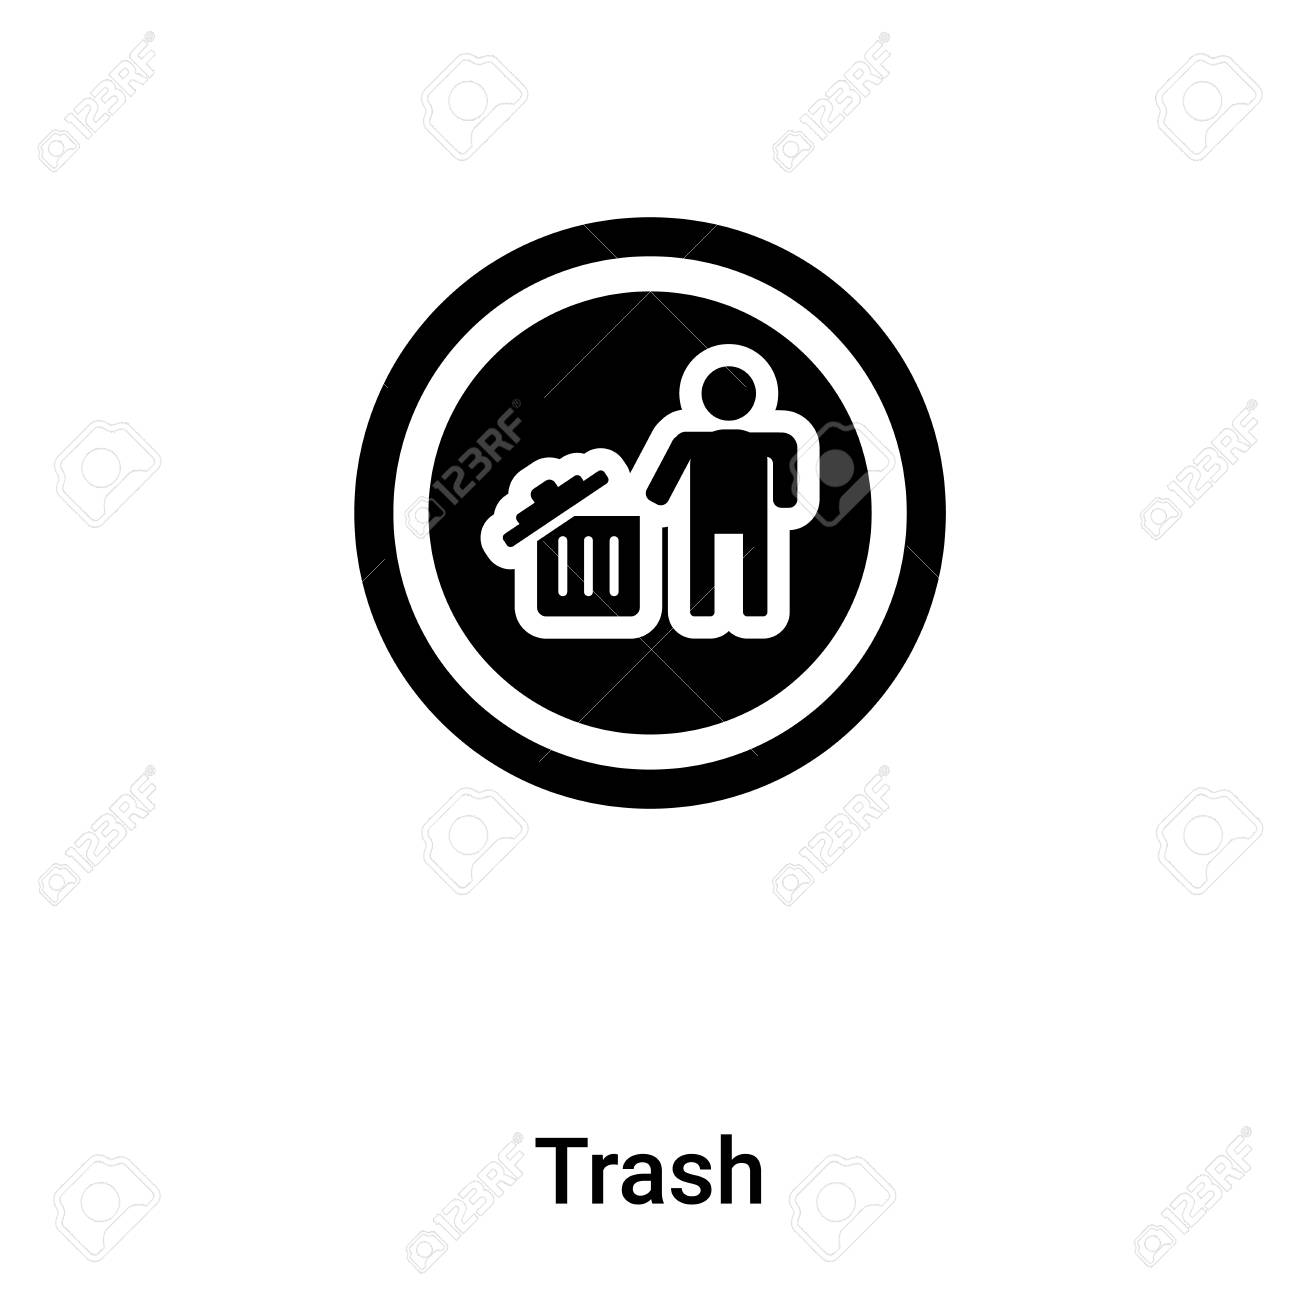 Trash icon isolated on white background, concept of Trash sign on transparent background, filled black symbol - 125620012